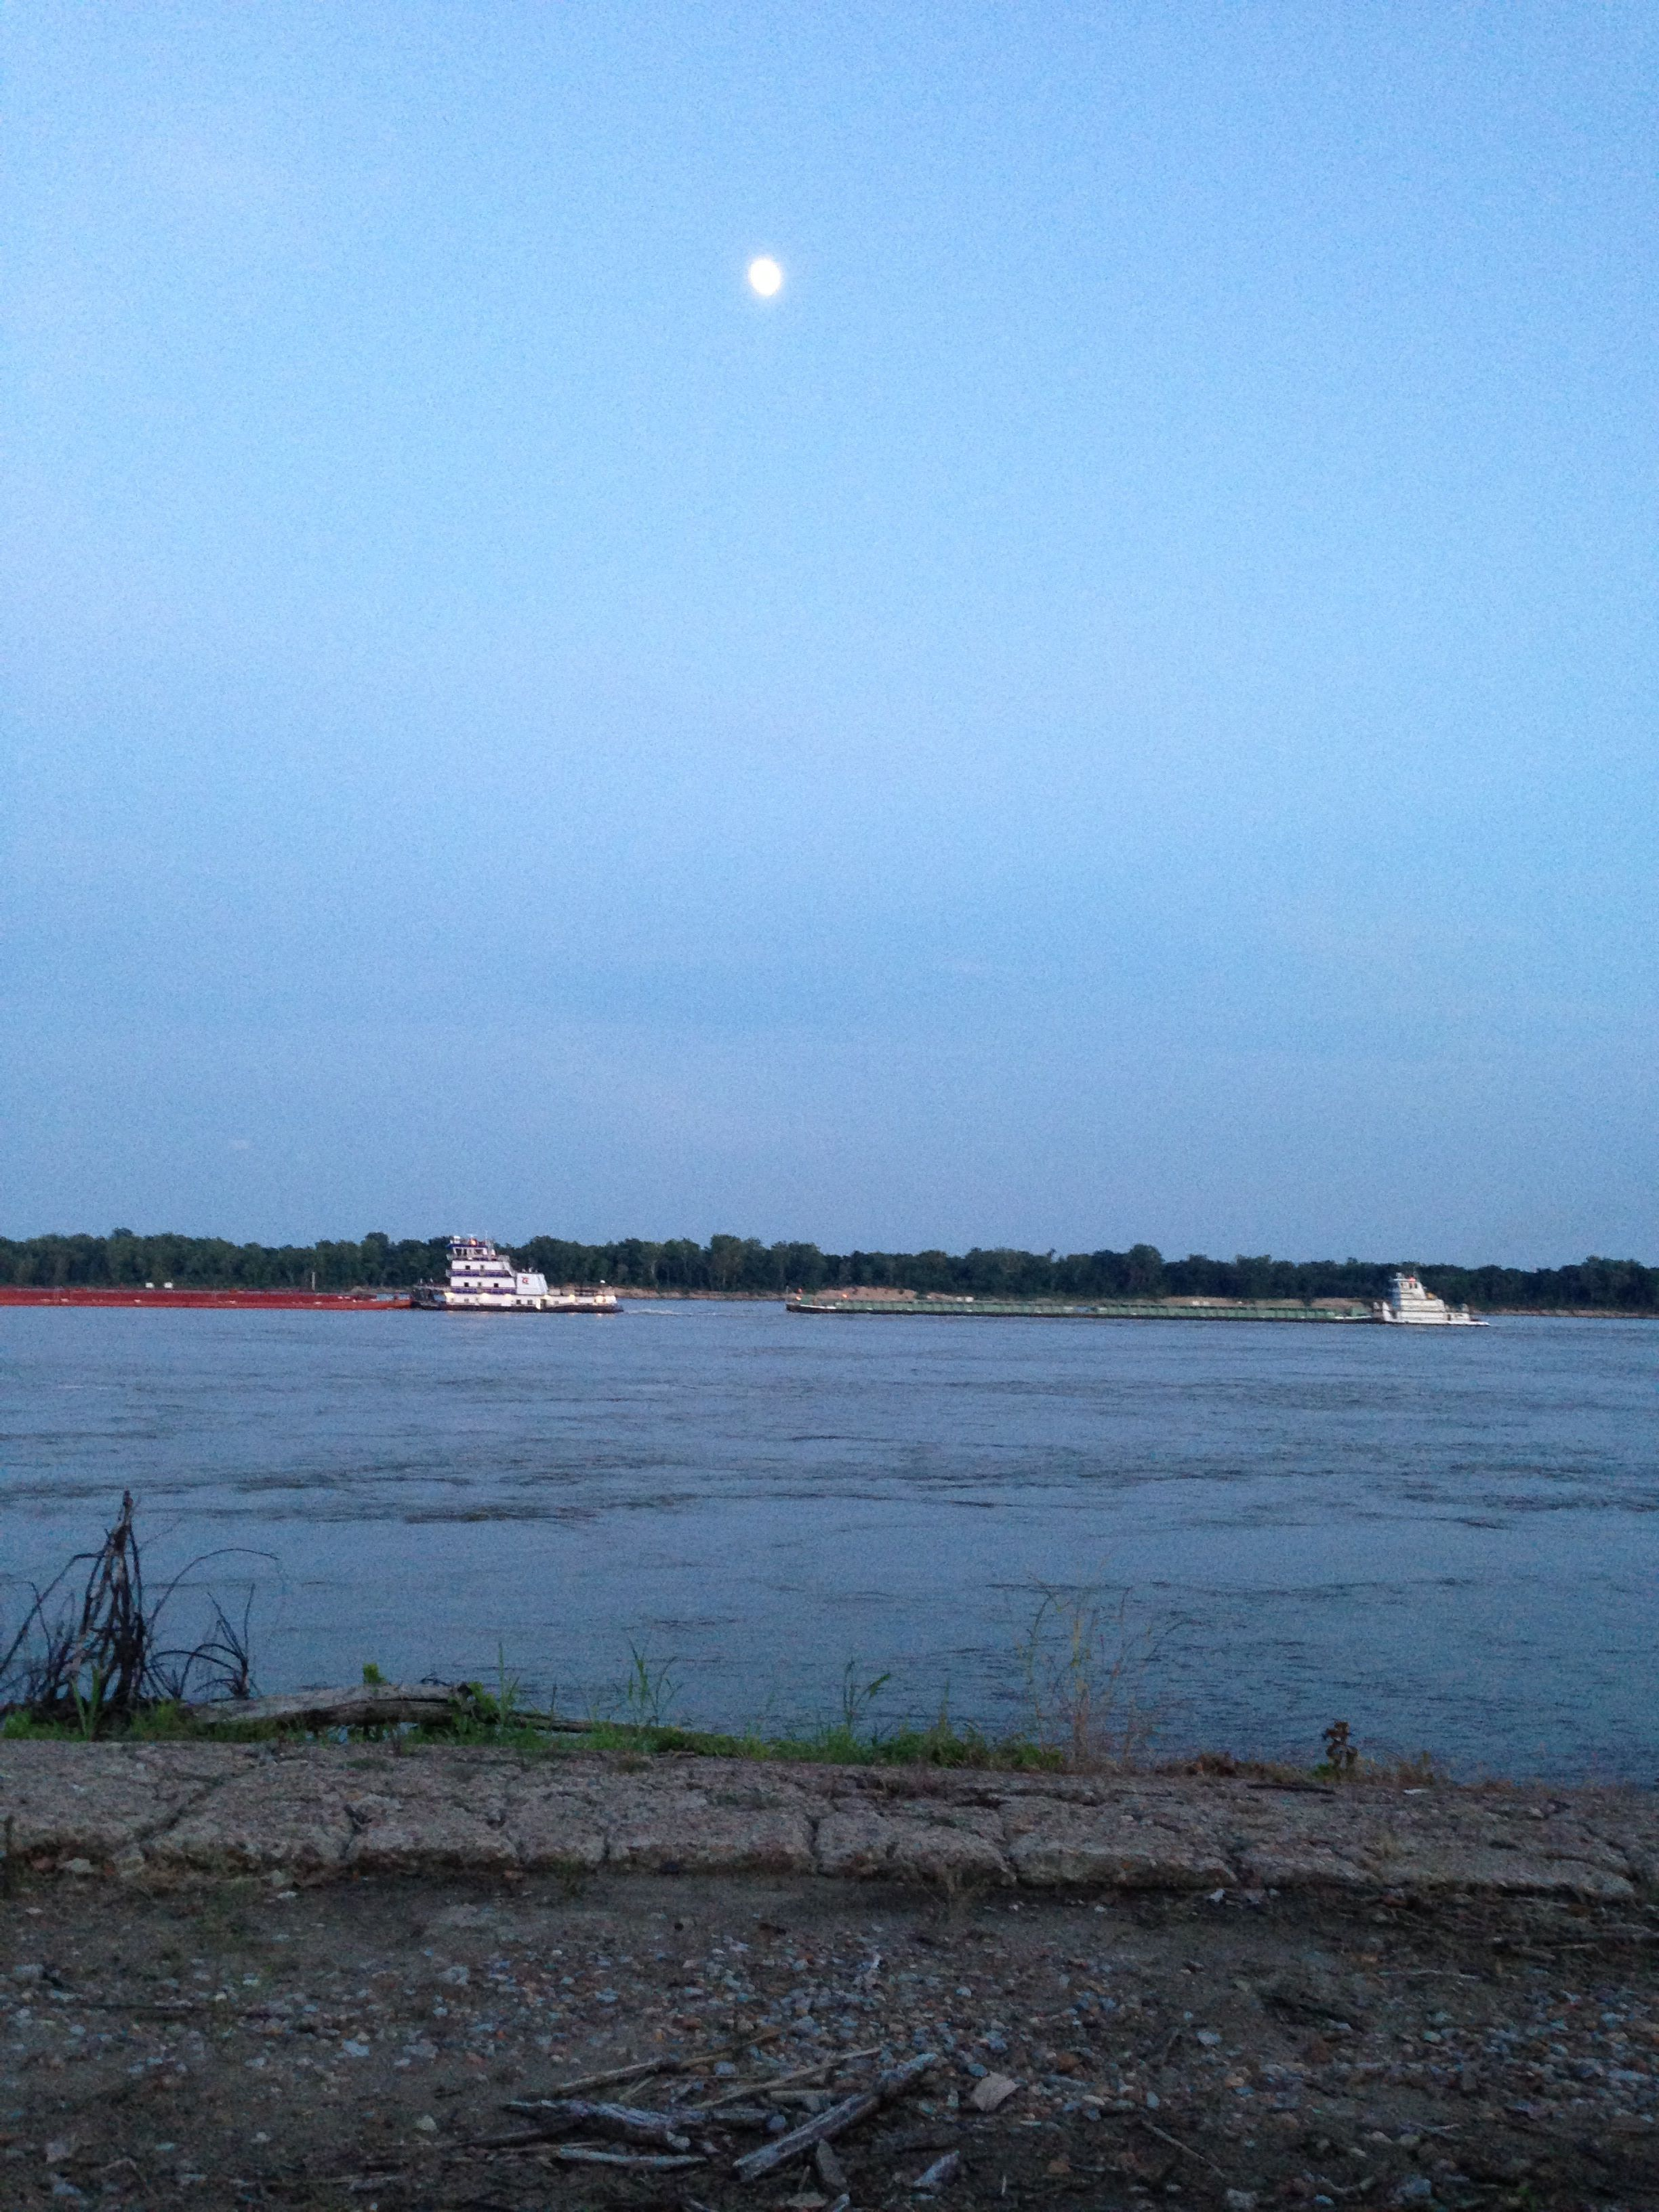 Sun setting, moon rising, tug boats moving cargo north on the Mississippi.